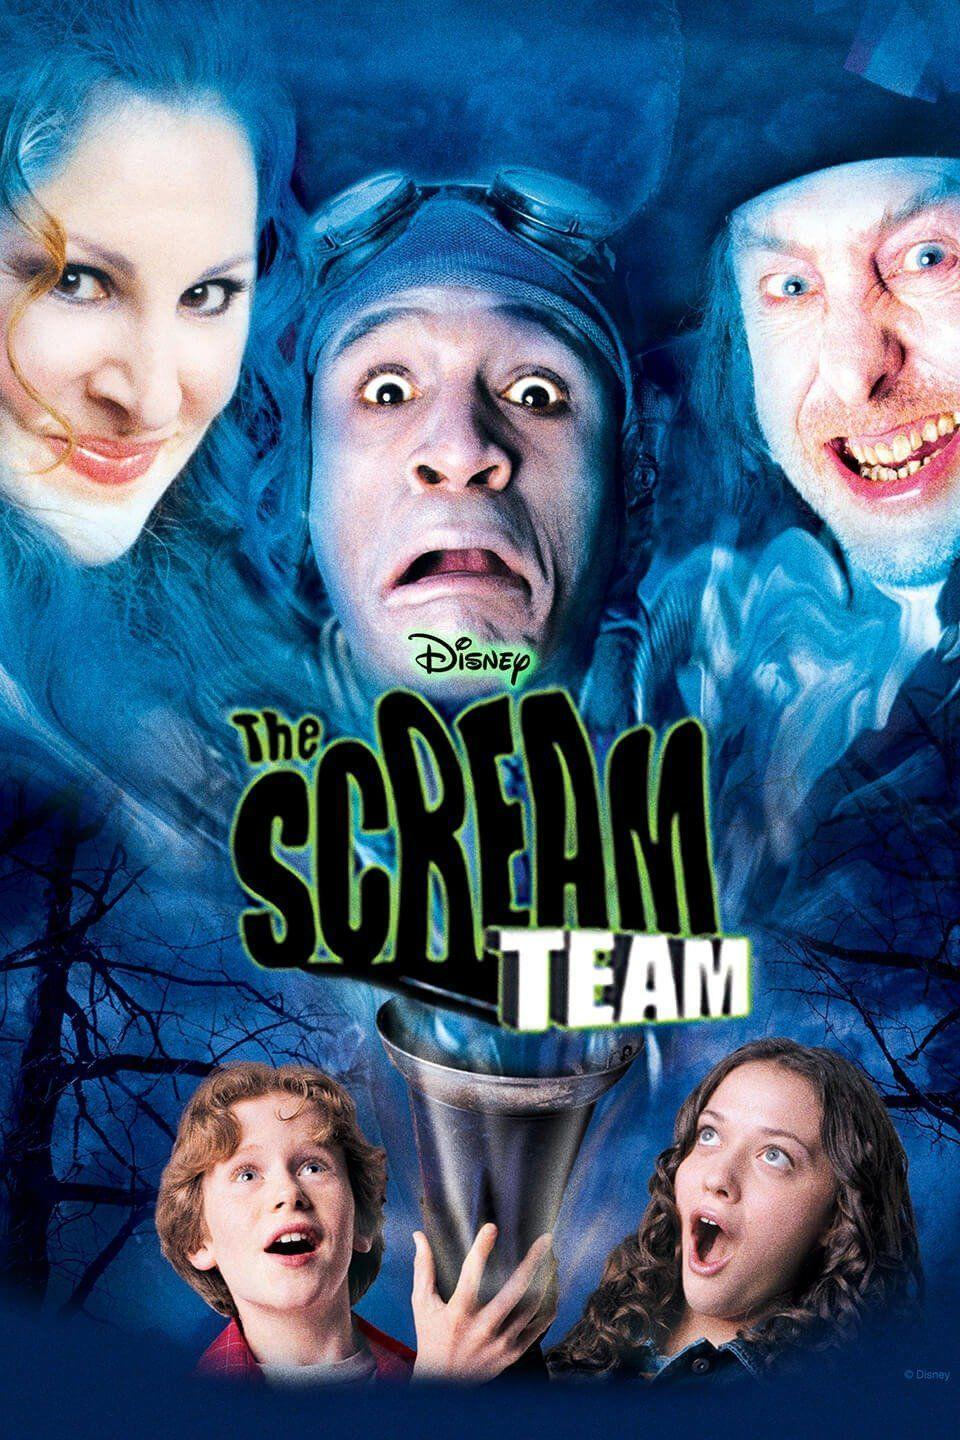 """<p>Two kids visit their dad's hometown for their grandfather's funeral. With the town's Halloween Festival preparations in full swing, it's no wonder the ghosts are coming out, and they just won't let Grandpa rest in peace. Kathy Najimy (of <em>Hocus Pocus</em> fame) stars in this movie.</p><p><a class=""""link rapid-noclick-resp"""" href=""""https://go.redirectingat.com?id=74968X1596630&url=https%3A%2F%2Fwww.disneyplus.com%2Fmovies%2Fthe-scream-team%2F1uEKpynAuulg&sref=https%3A%2F%2Fwww.countryliving.com%2Flife%2Fentertainment%2Fg32748070%2Fdisney-plus-halloween-movies%2F"""" rel=""""nofollow noopener"""" target=""""_blank"""" data-ylk=""""slk:WATCH NOW"""">WATCH NOW</a></p>"""